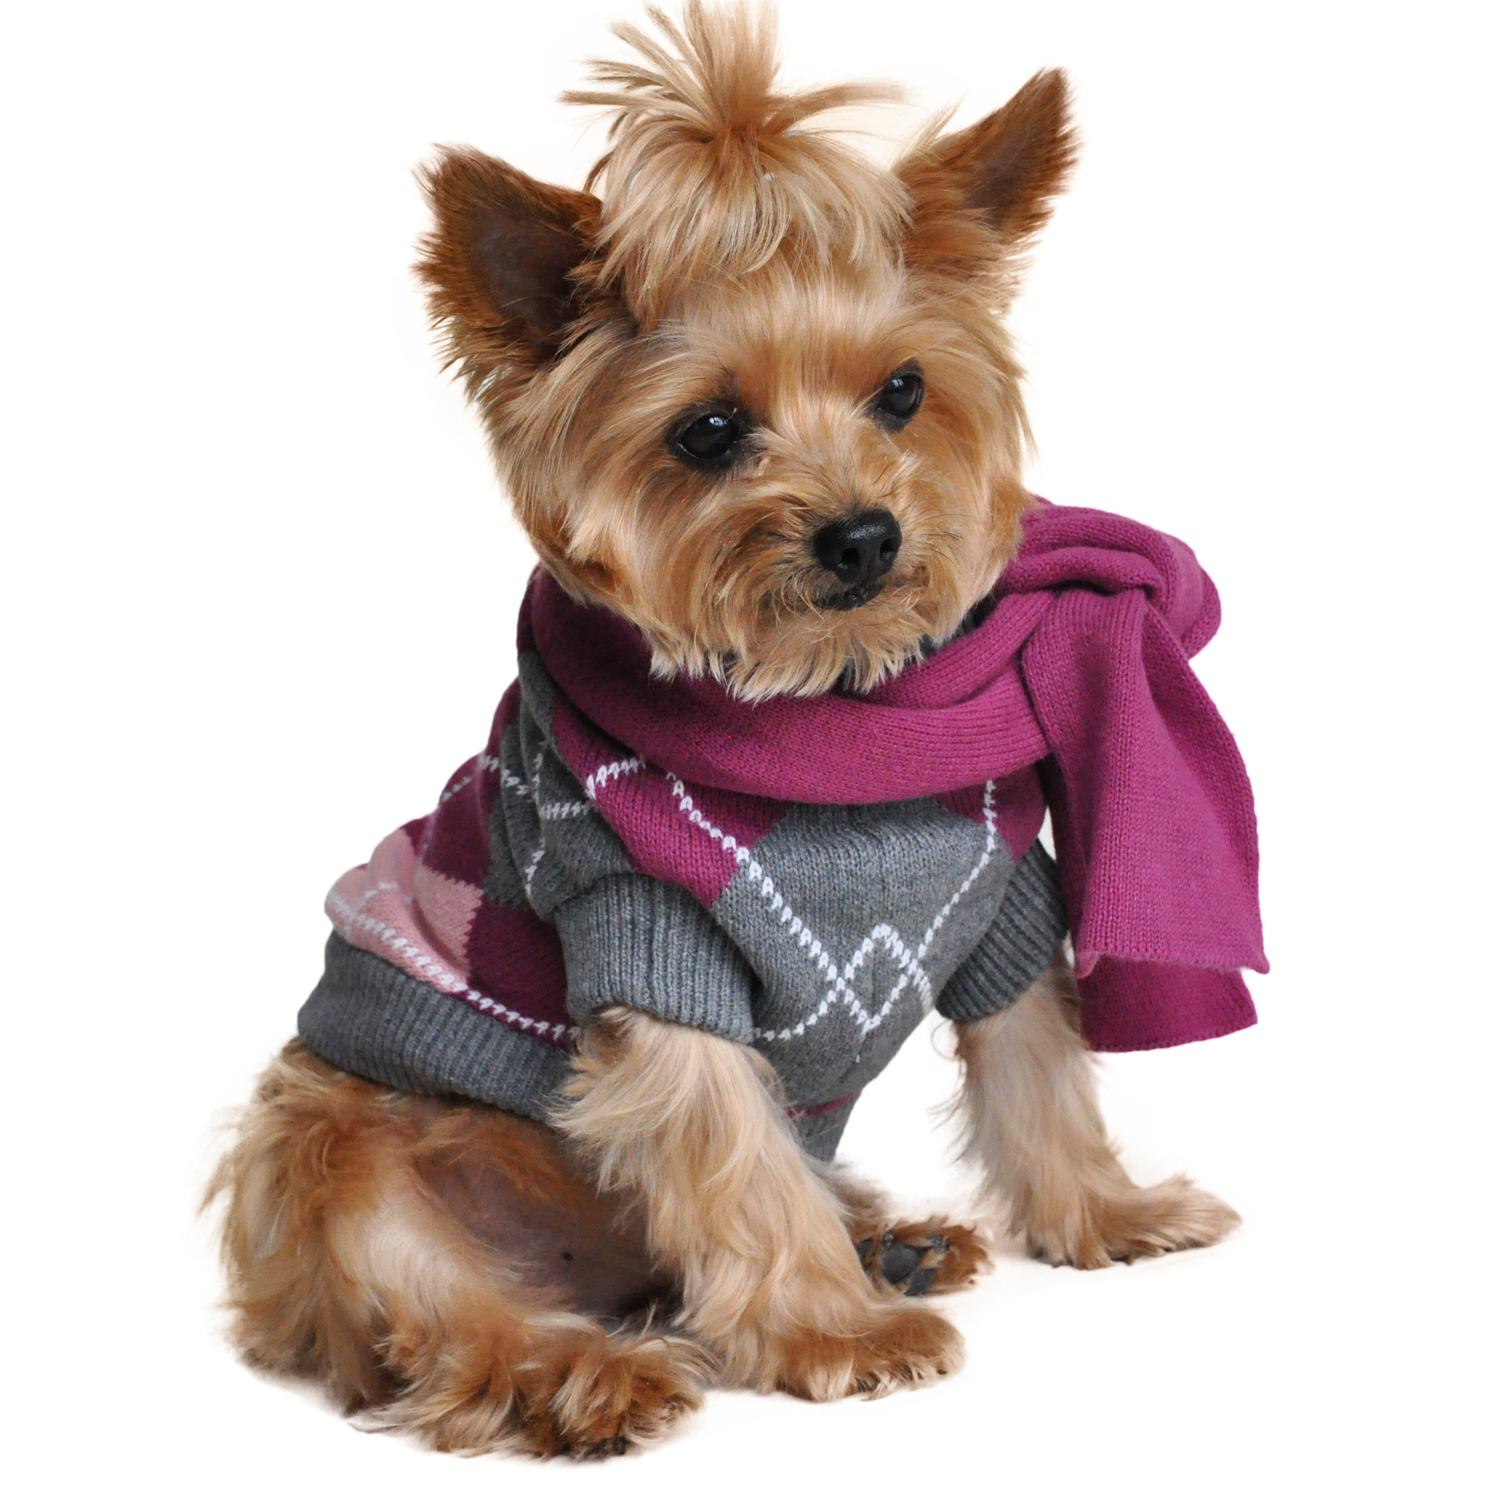 Find great deals on eBay for dog sweater. Shop with confidence.